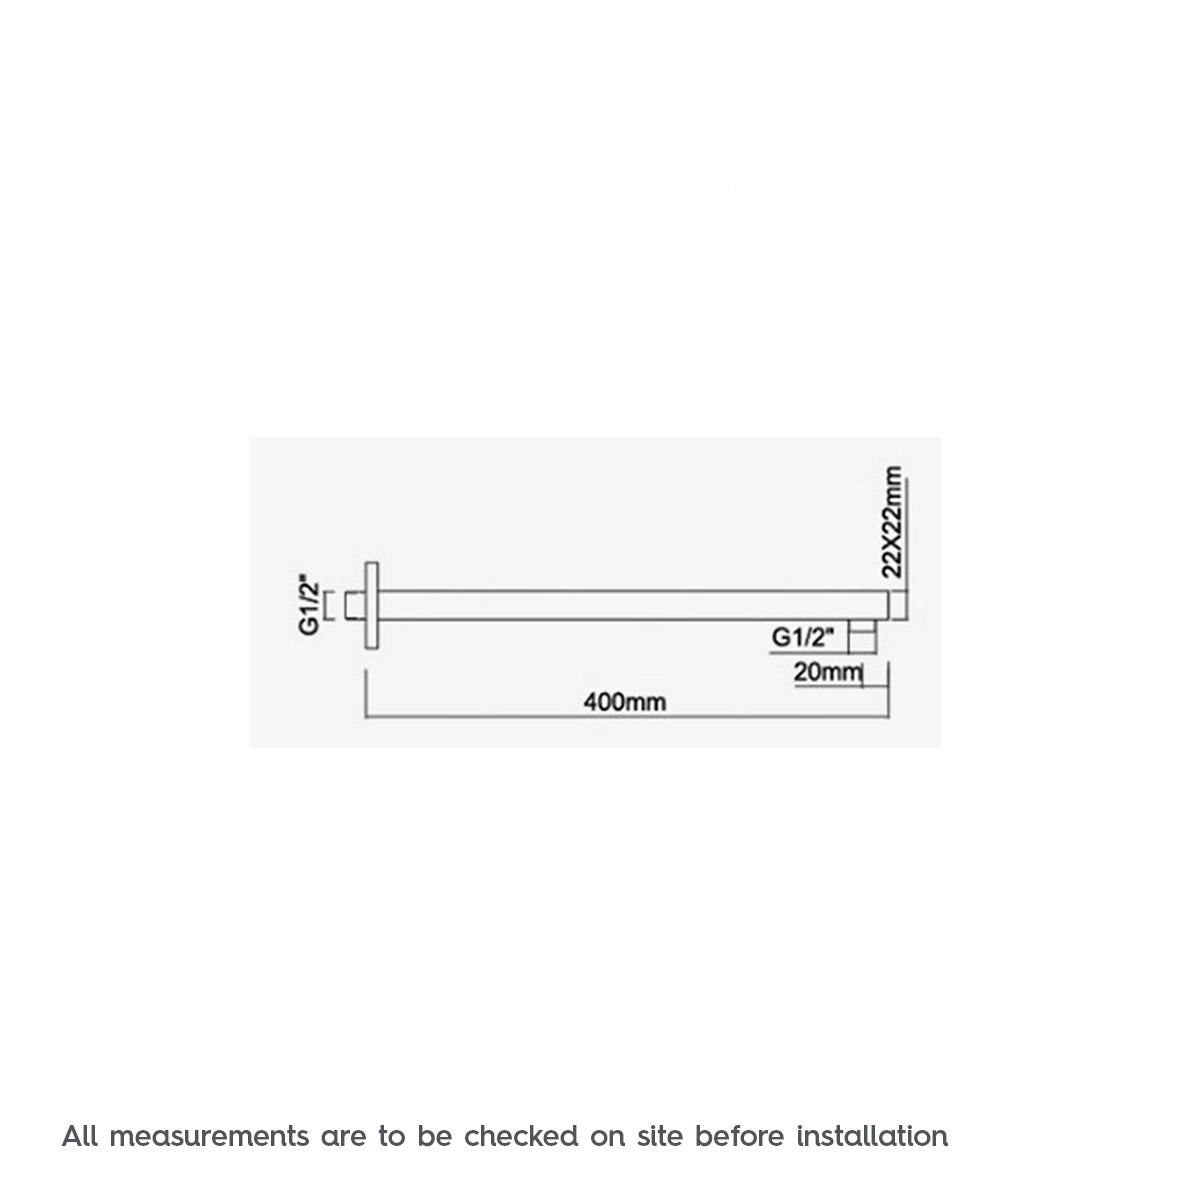 Dimensions for Square wall shower arm 400mm